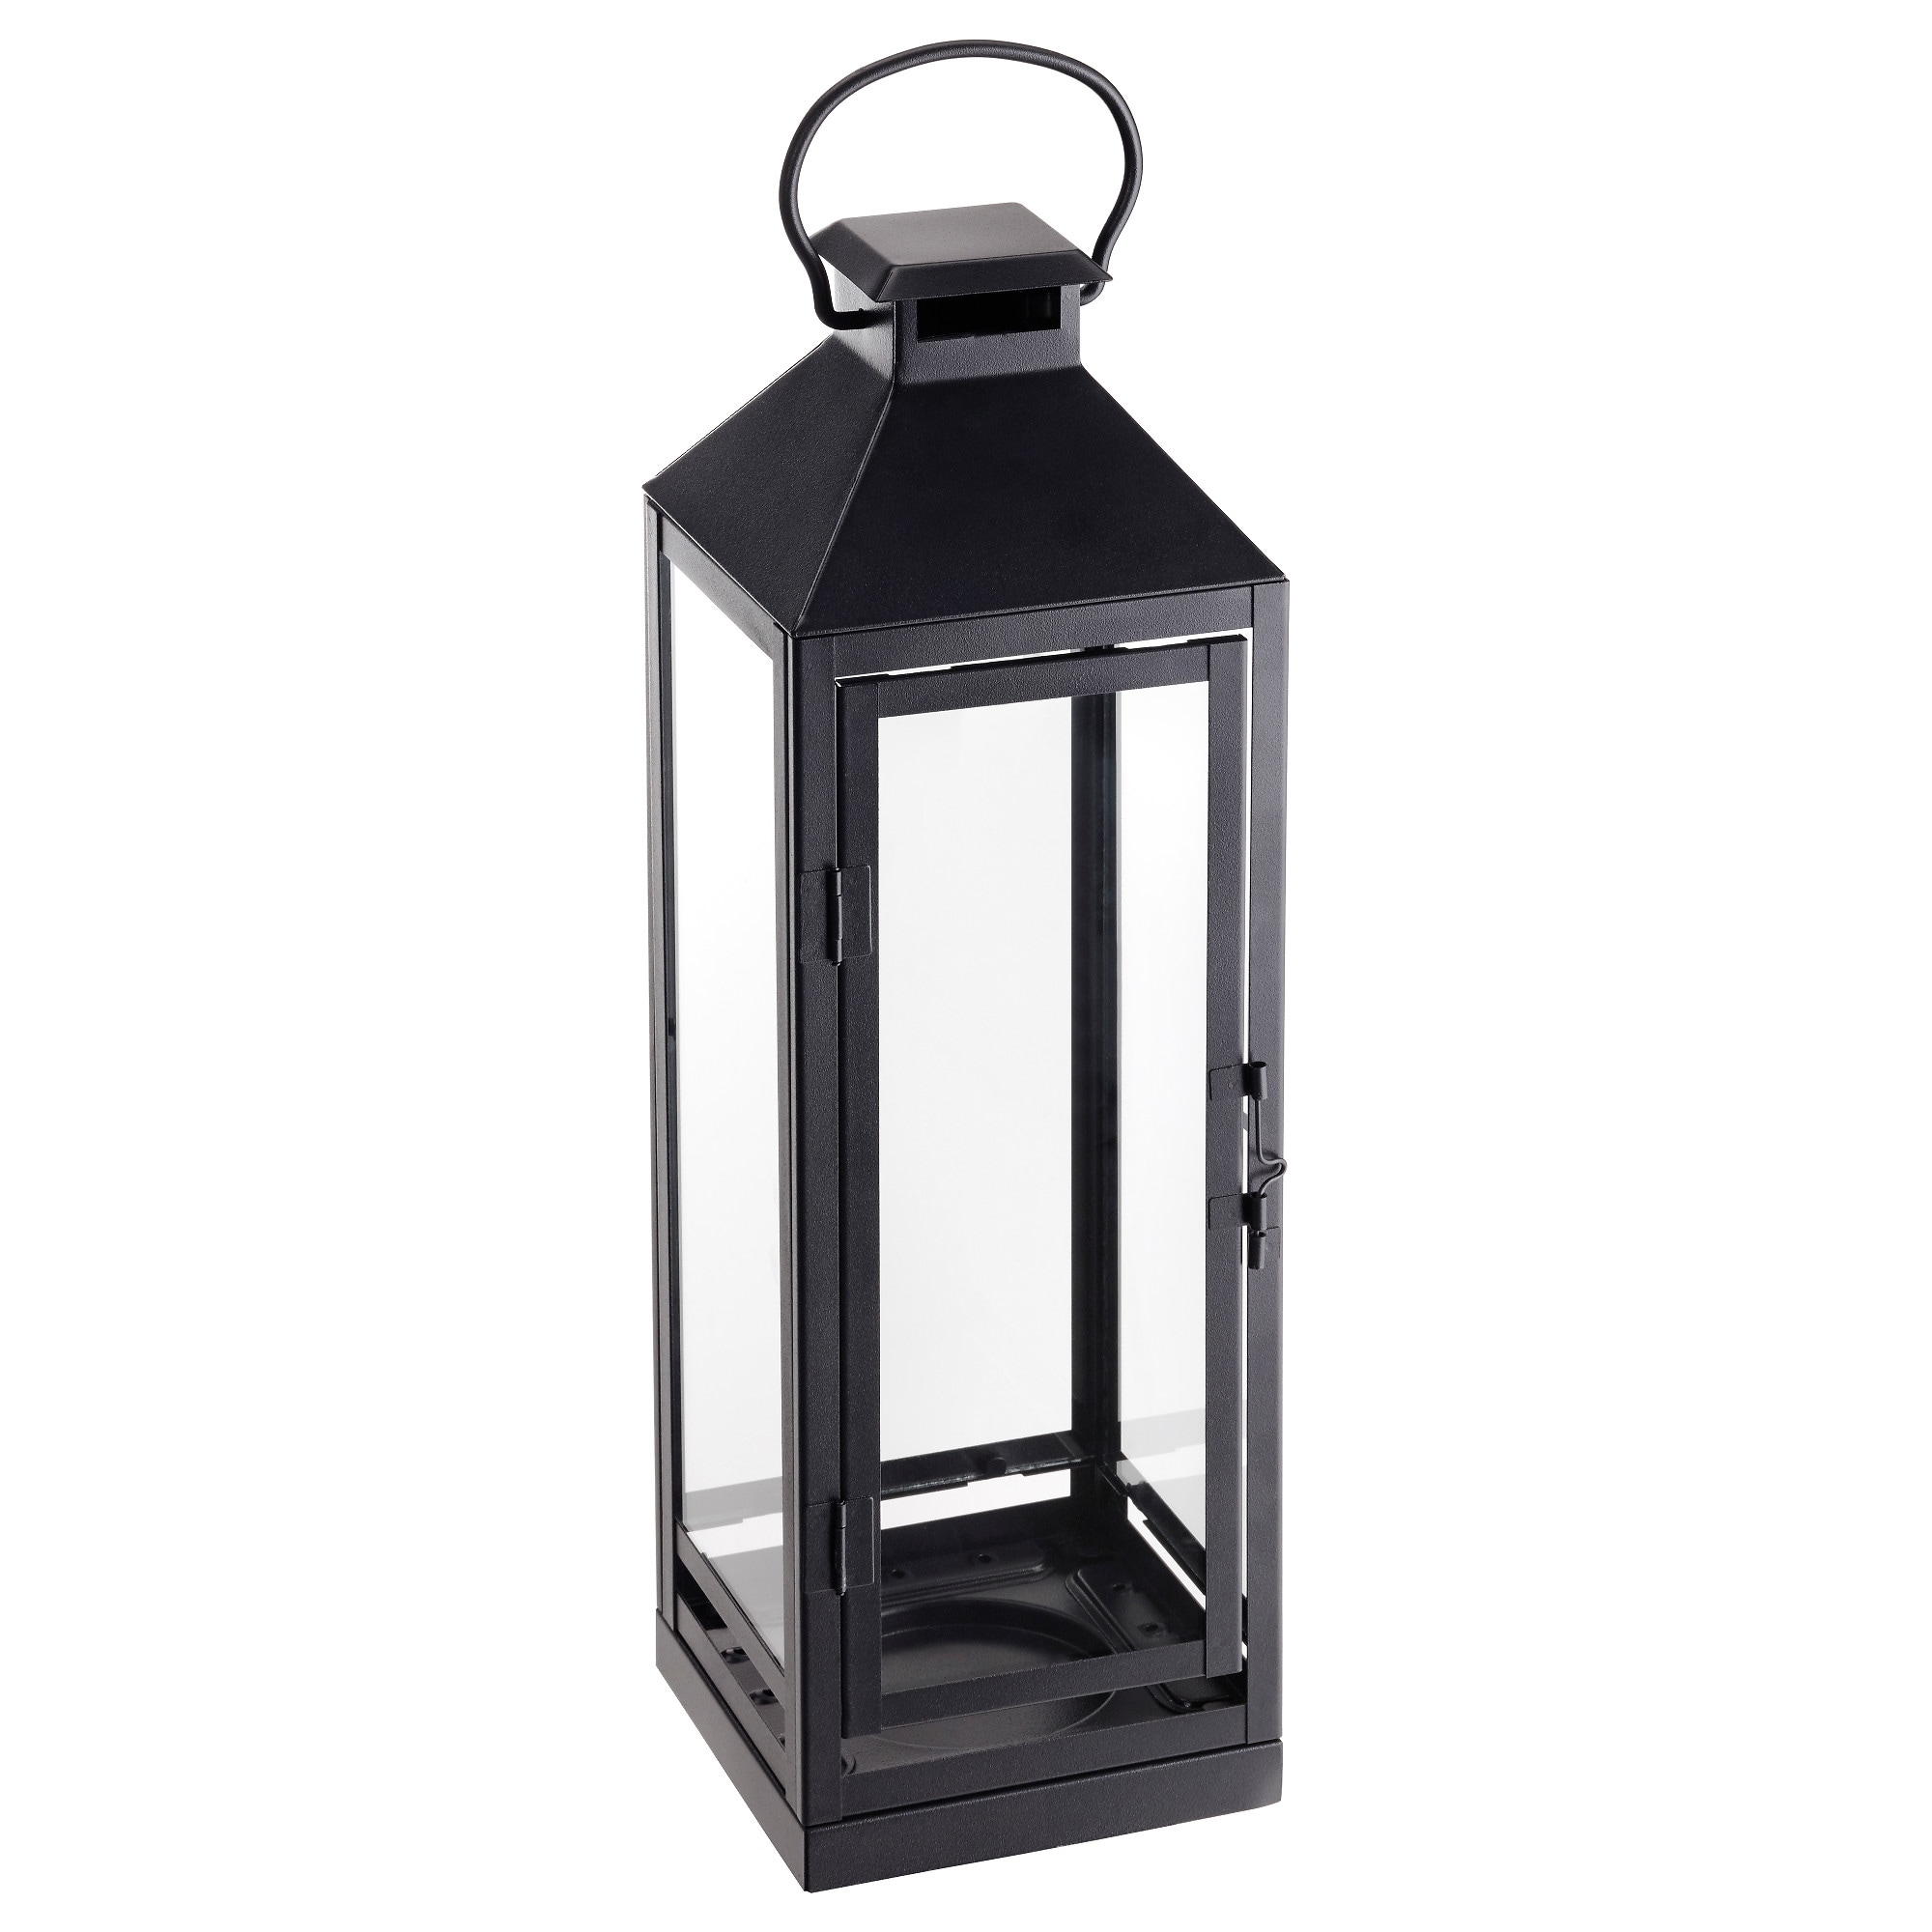 2019 Outdoor Plastic Lanterns With Regard To Lanterns & Candle Lanterns – Ikea (View 2 of 20)